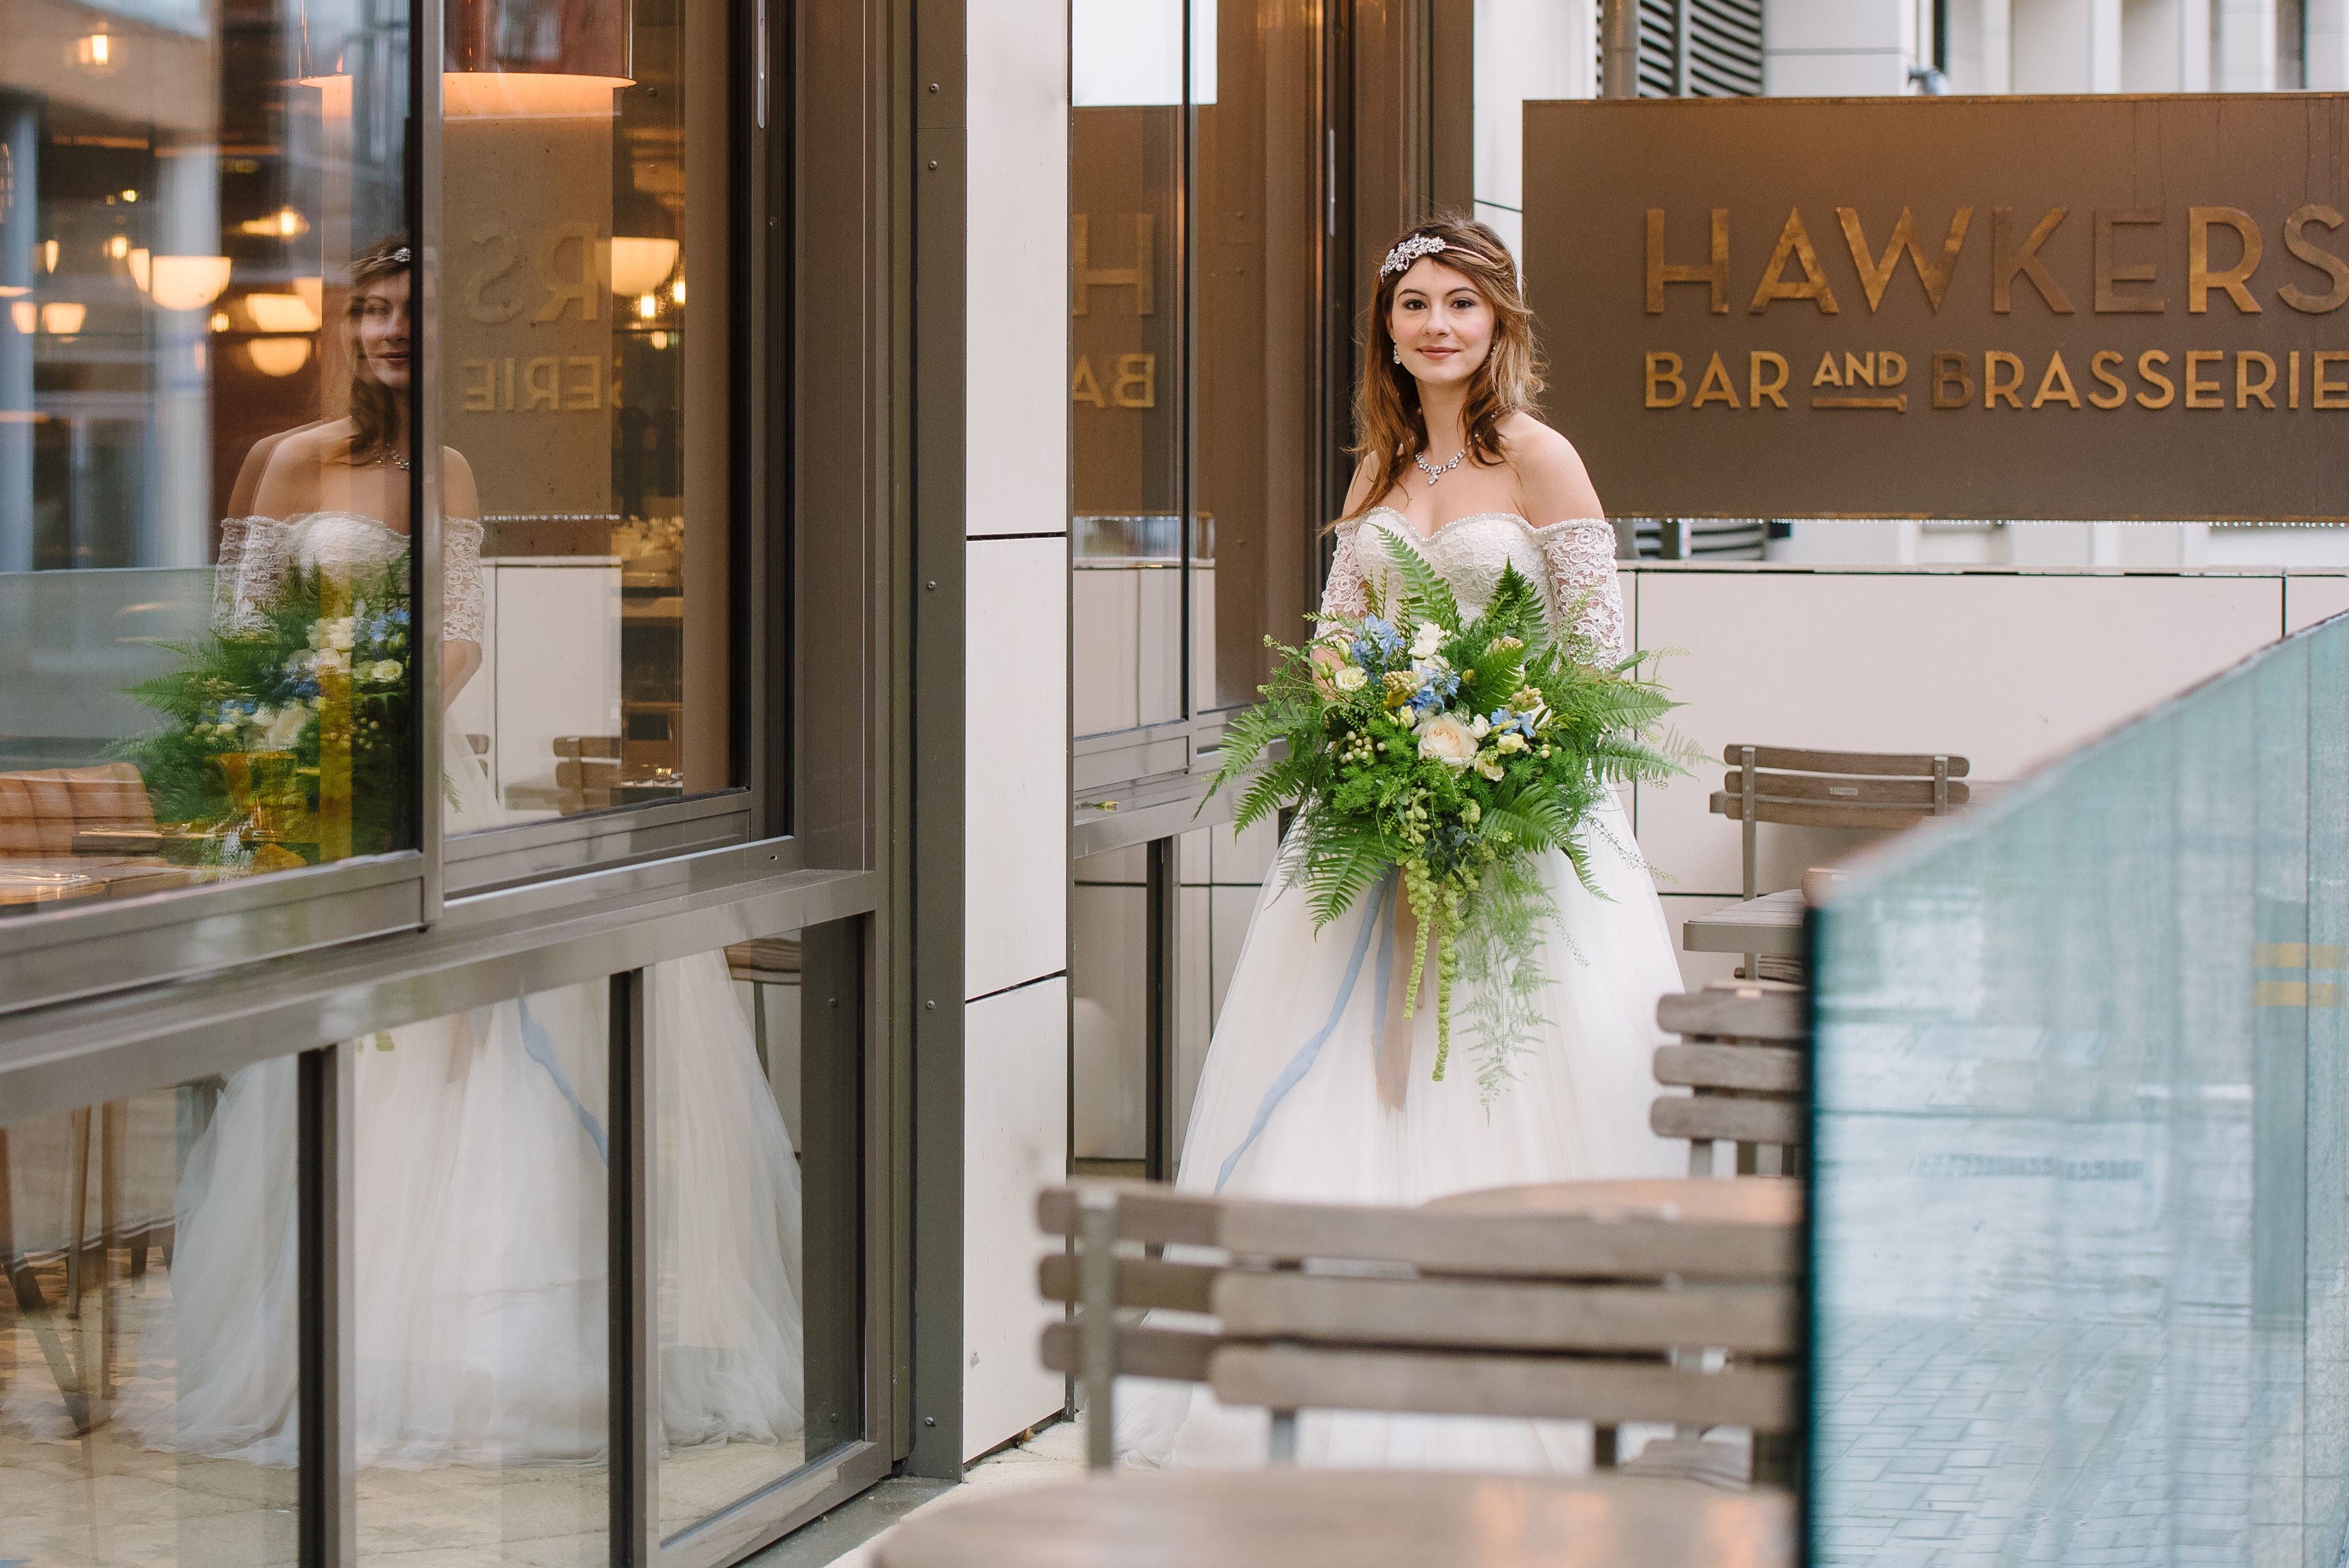 stylish bride holding bridal bouquet outside wedding venue in surrey